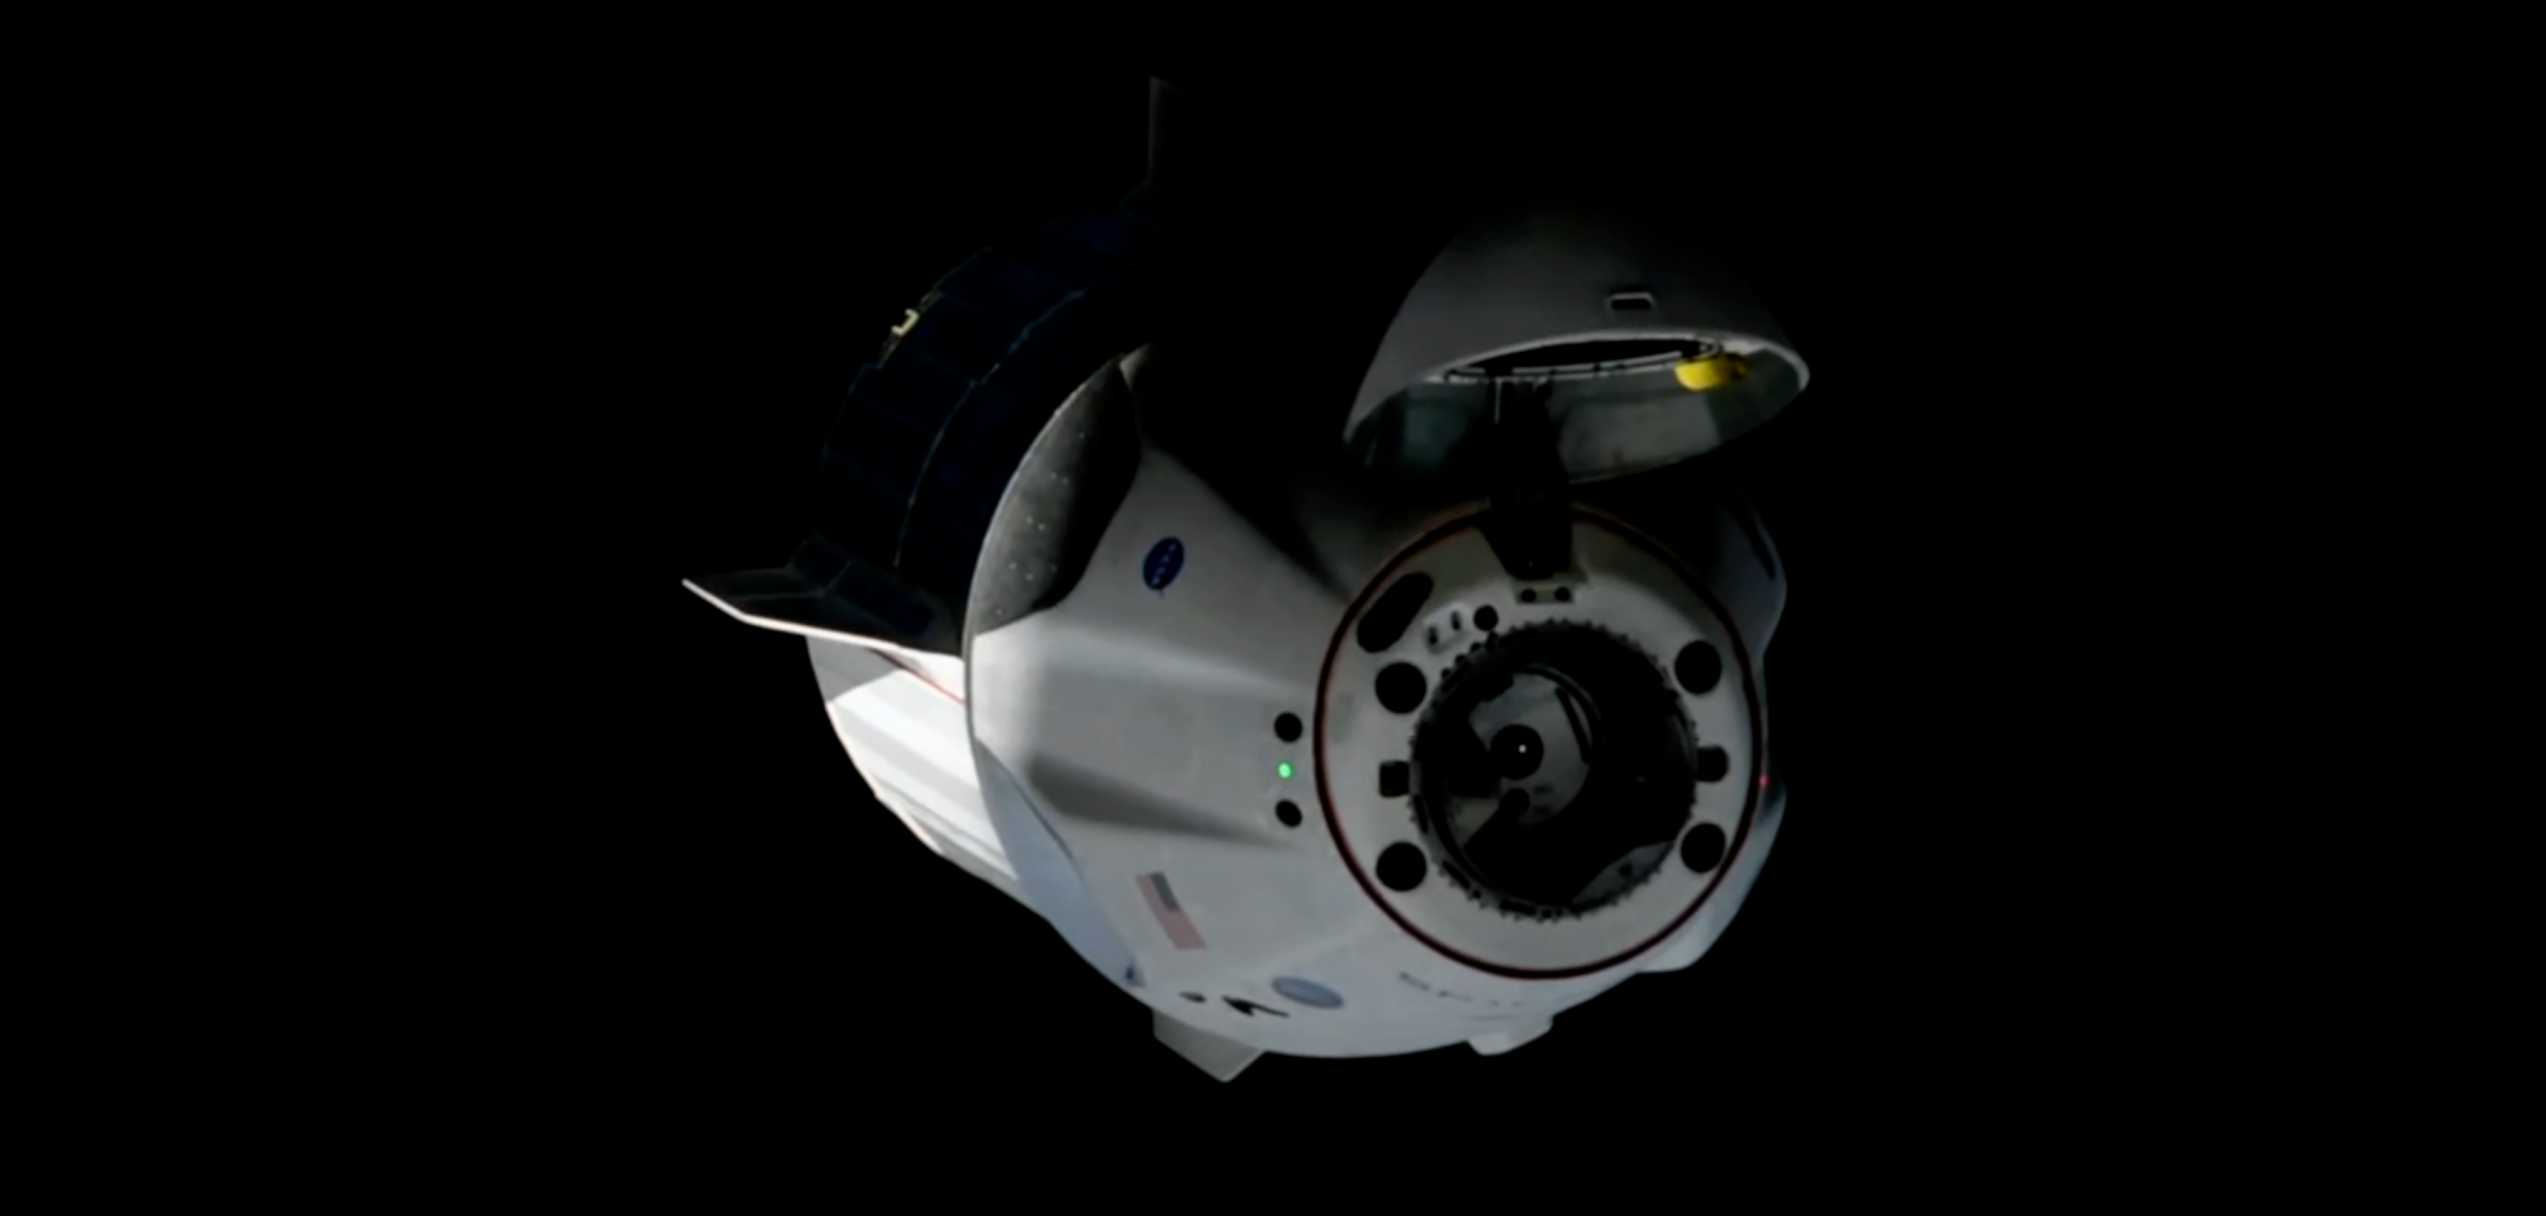 Crew Dragon C206 F9 B1058 Demo-2 053120 ISS arrival webcast (SpaceX) 11 (c)